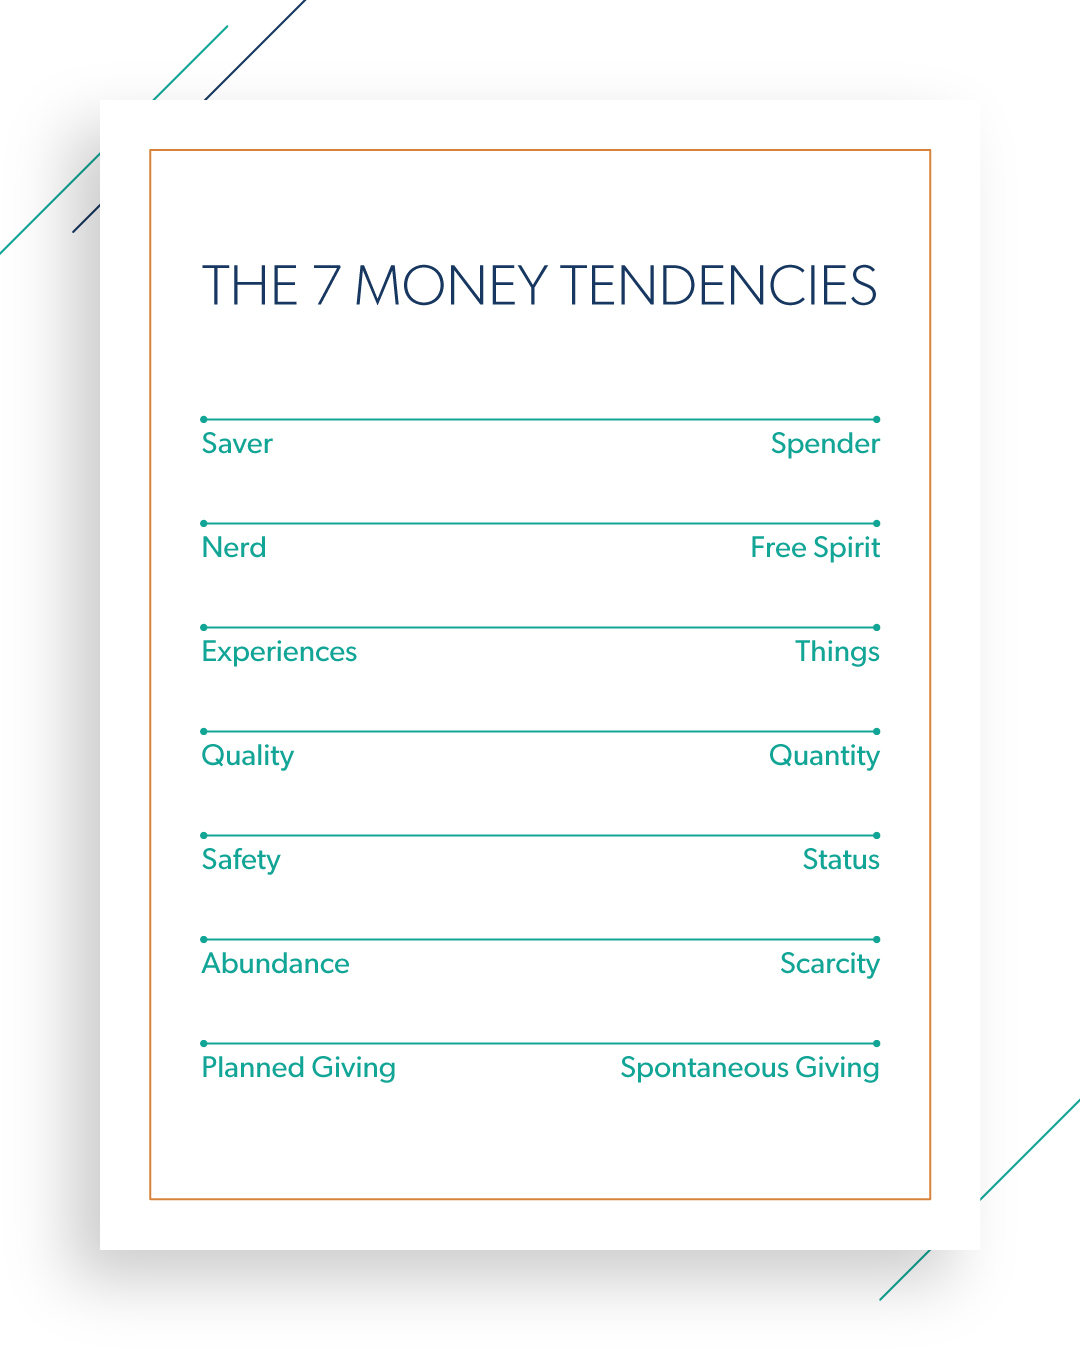 The Seven Money Tendencies: Spender or Saver; Nerd or Free Spirit; Experiences or Things; Quality or Quantity; Safety or Status; Abundance or Scarcity; Planned Giving or Spontaneous Giving